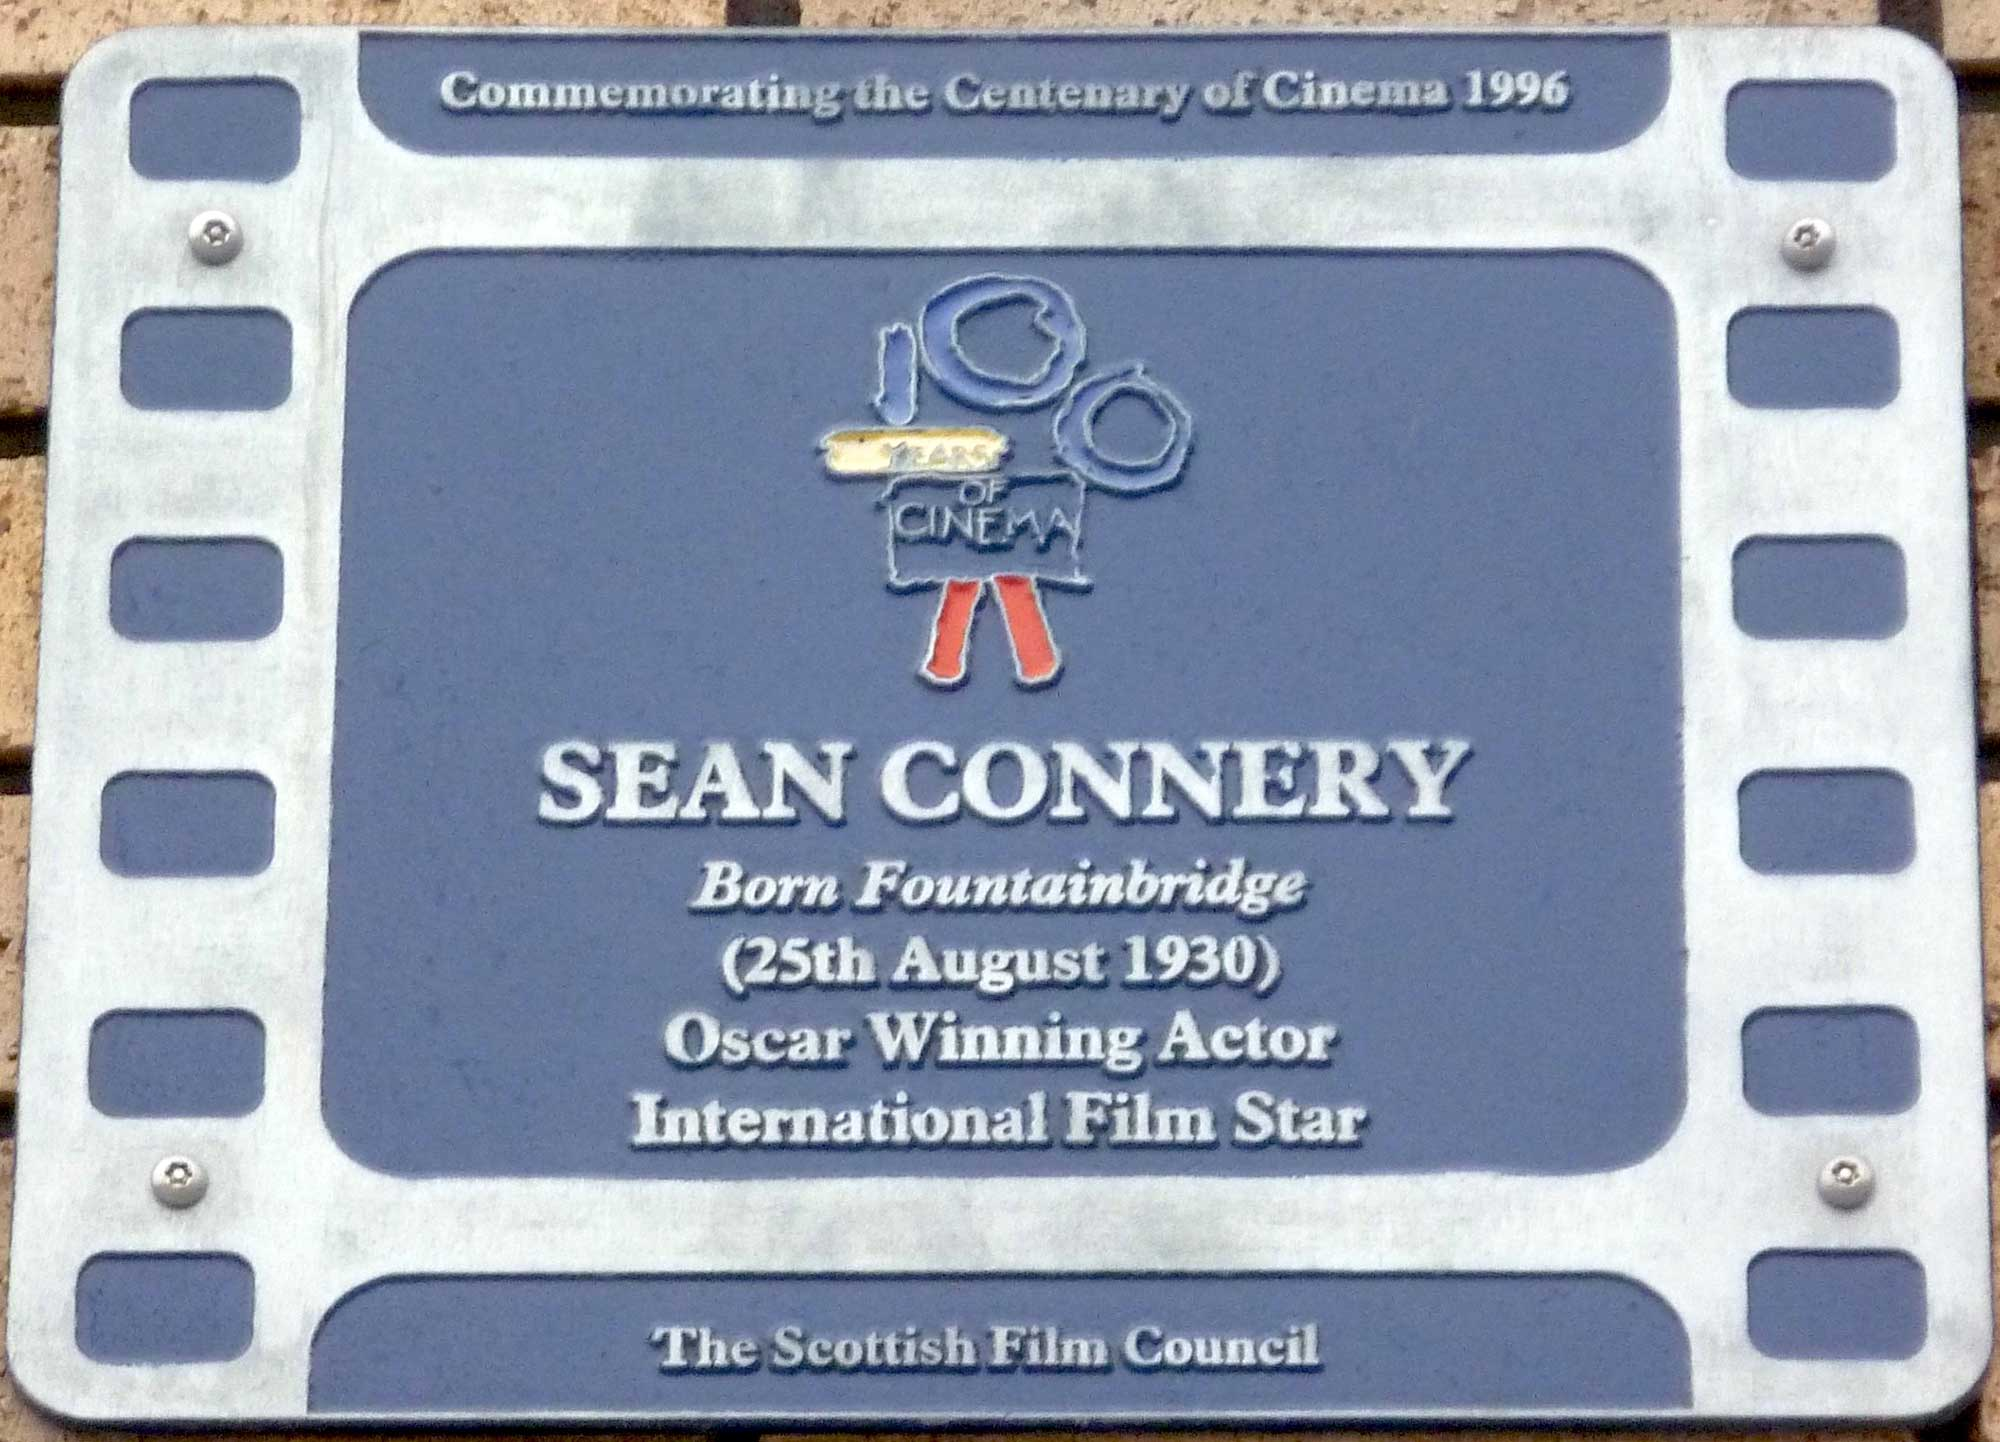 Sir Sean Connery Died at the Age of 90